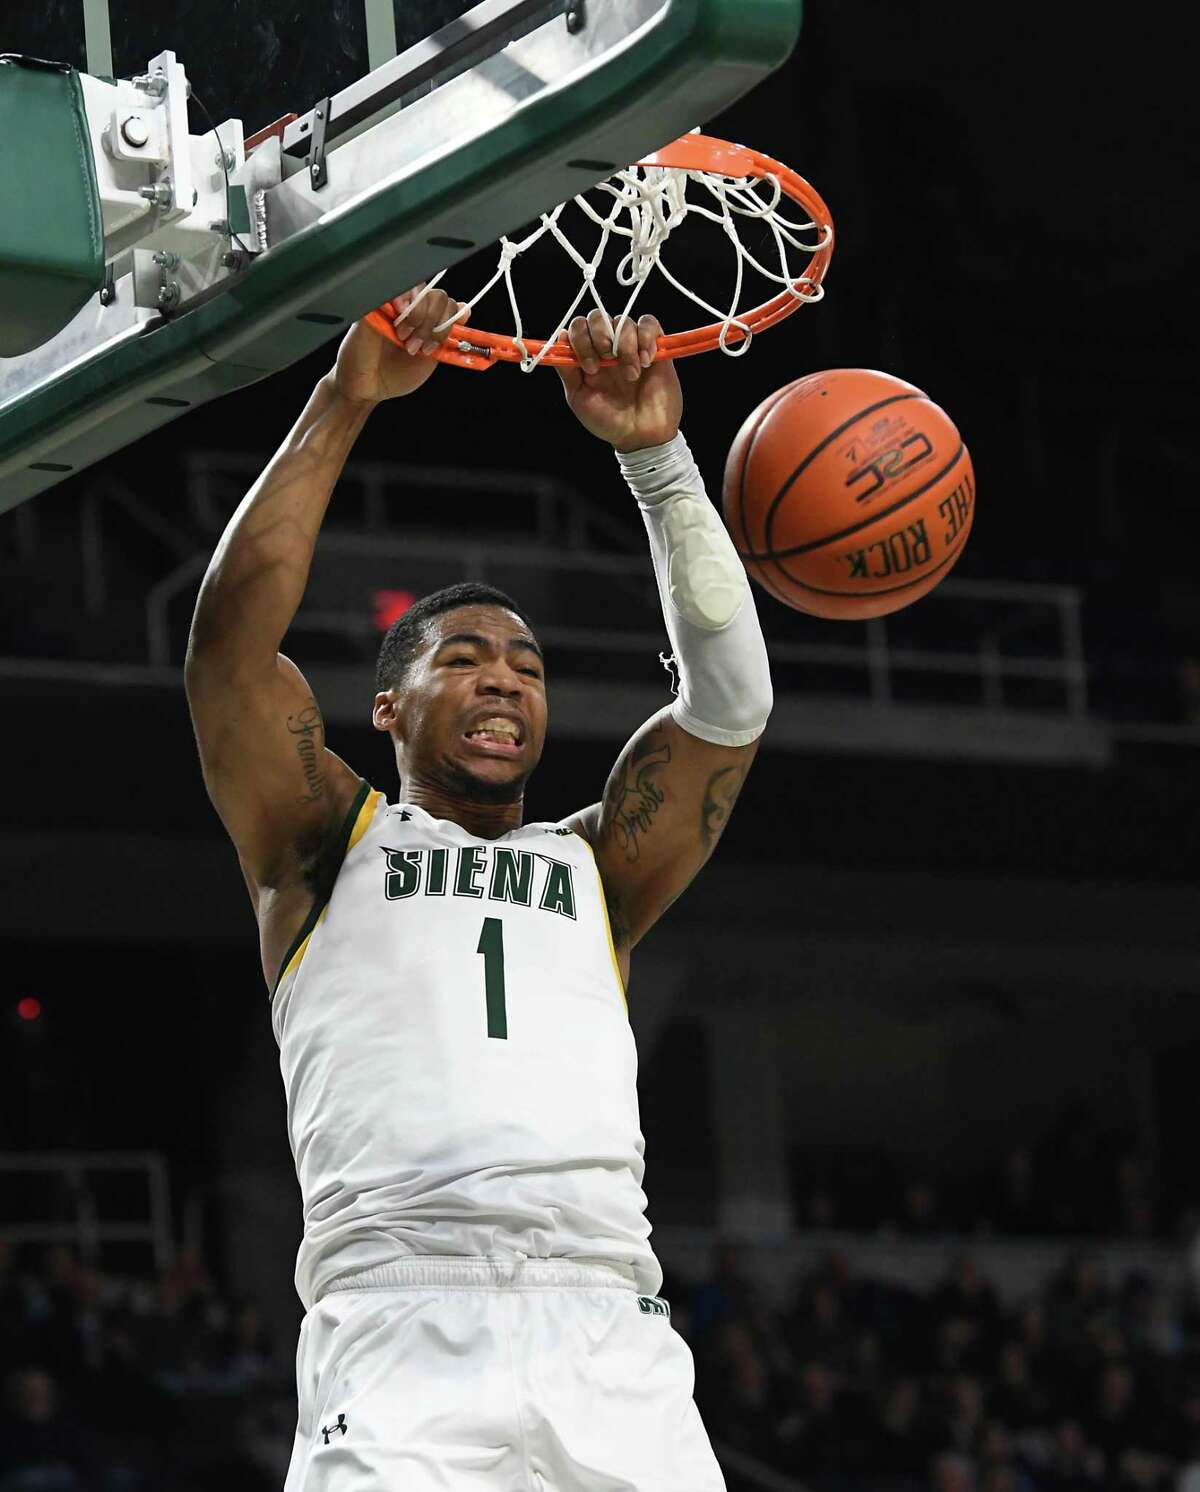 Siena's Elijah Burns dunks the ball during a basketball game against Canisius on Monday, Dec. 23, 2019 in Albany, N.Y. Burns made the winning three-pointer to win the game. (Lori Van Buren/Times Union)